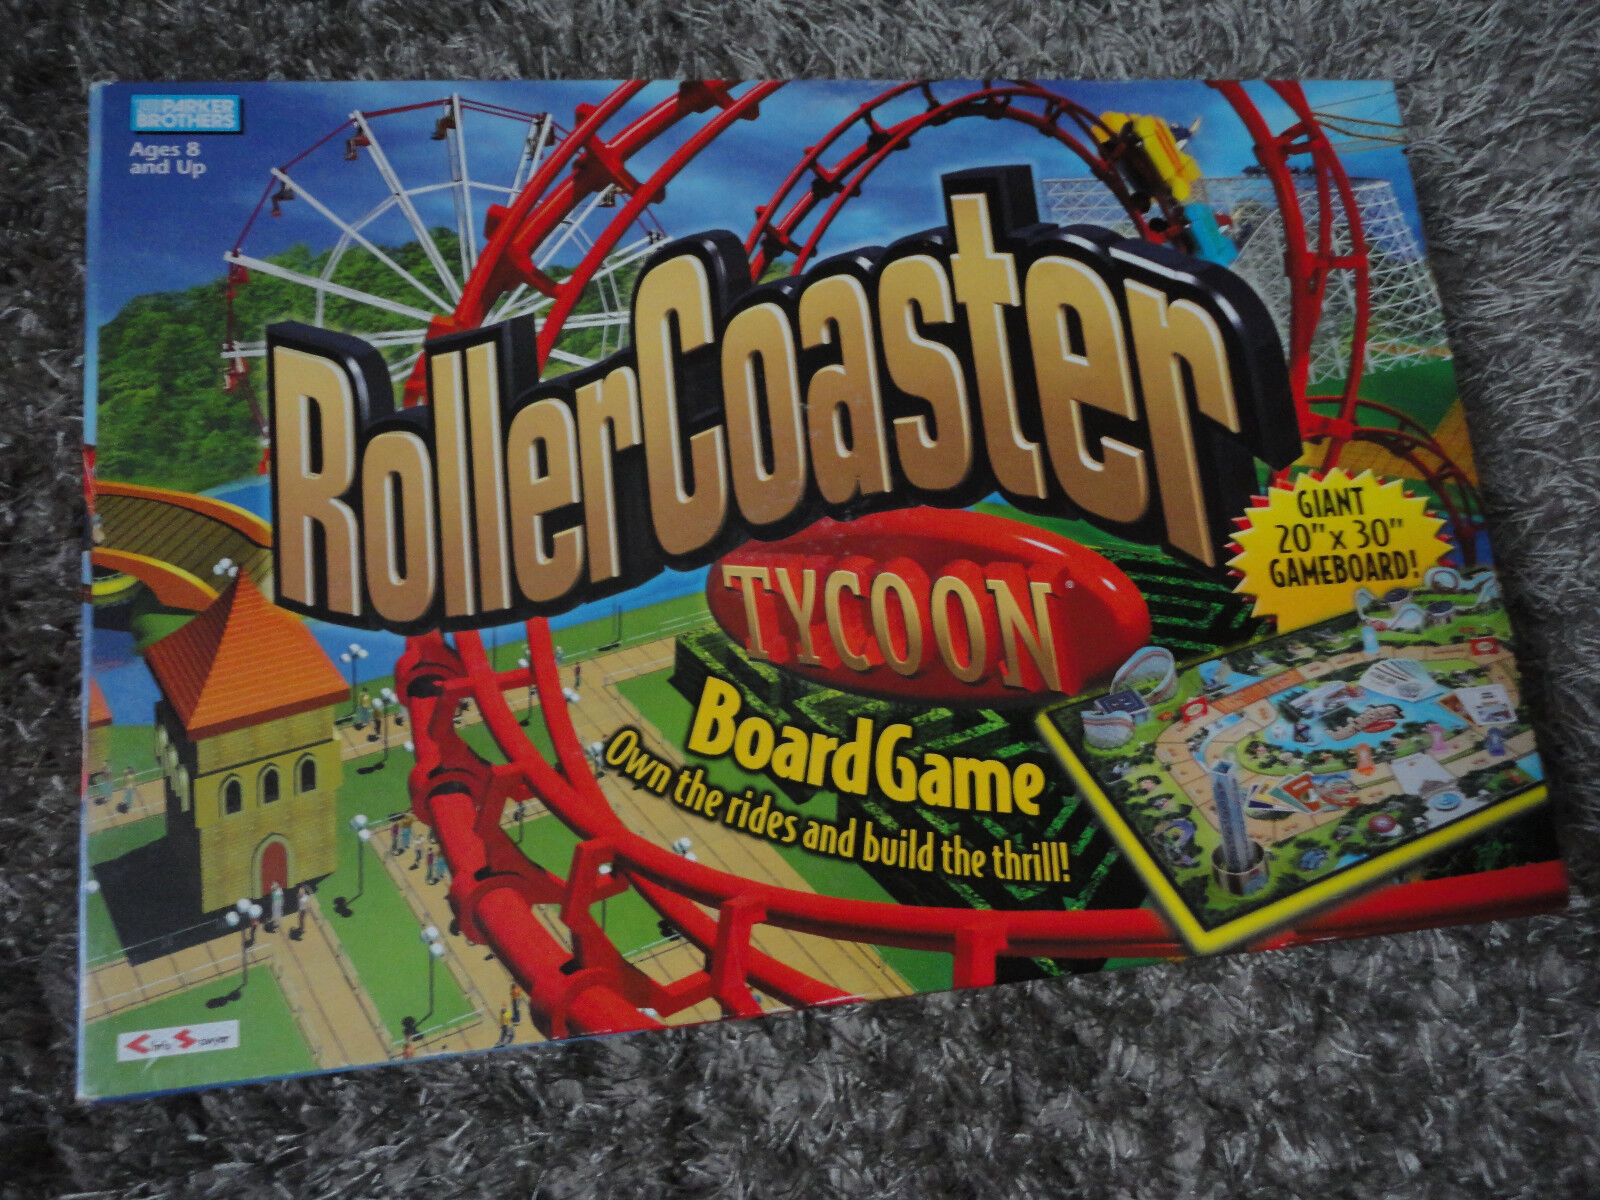 Rollercoaster Tycoon Board Game Roller Coaster Trill Rides by Parker Brothers